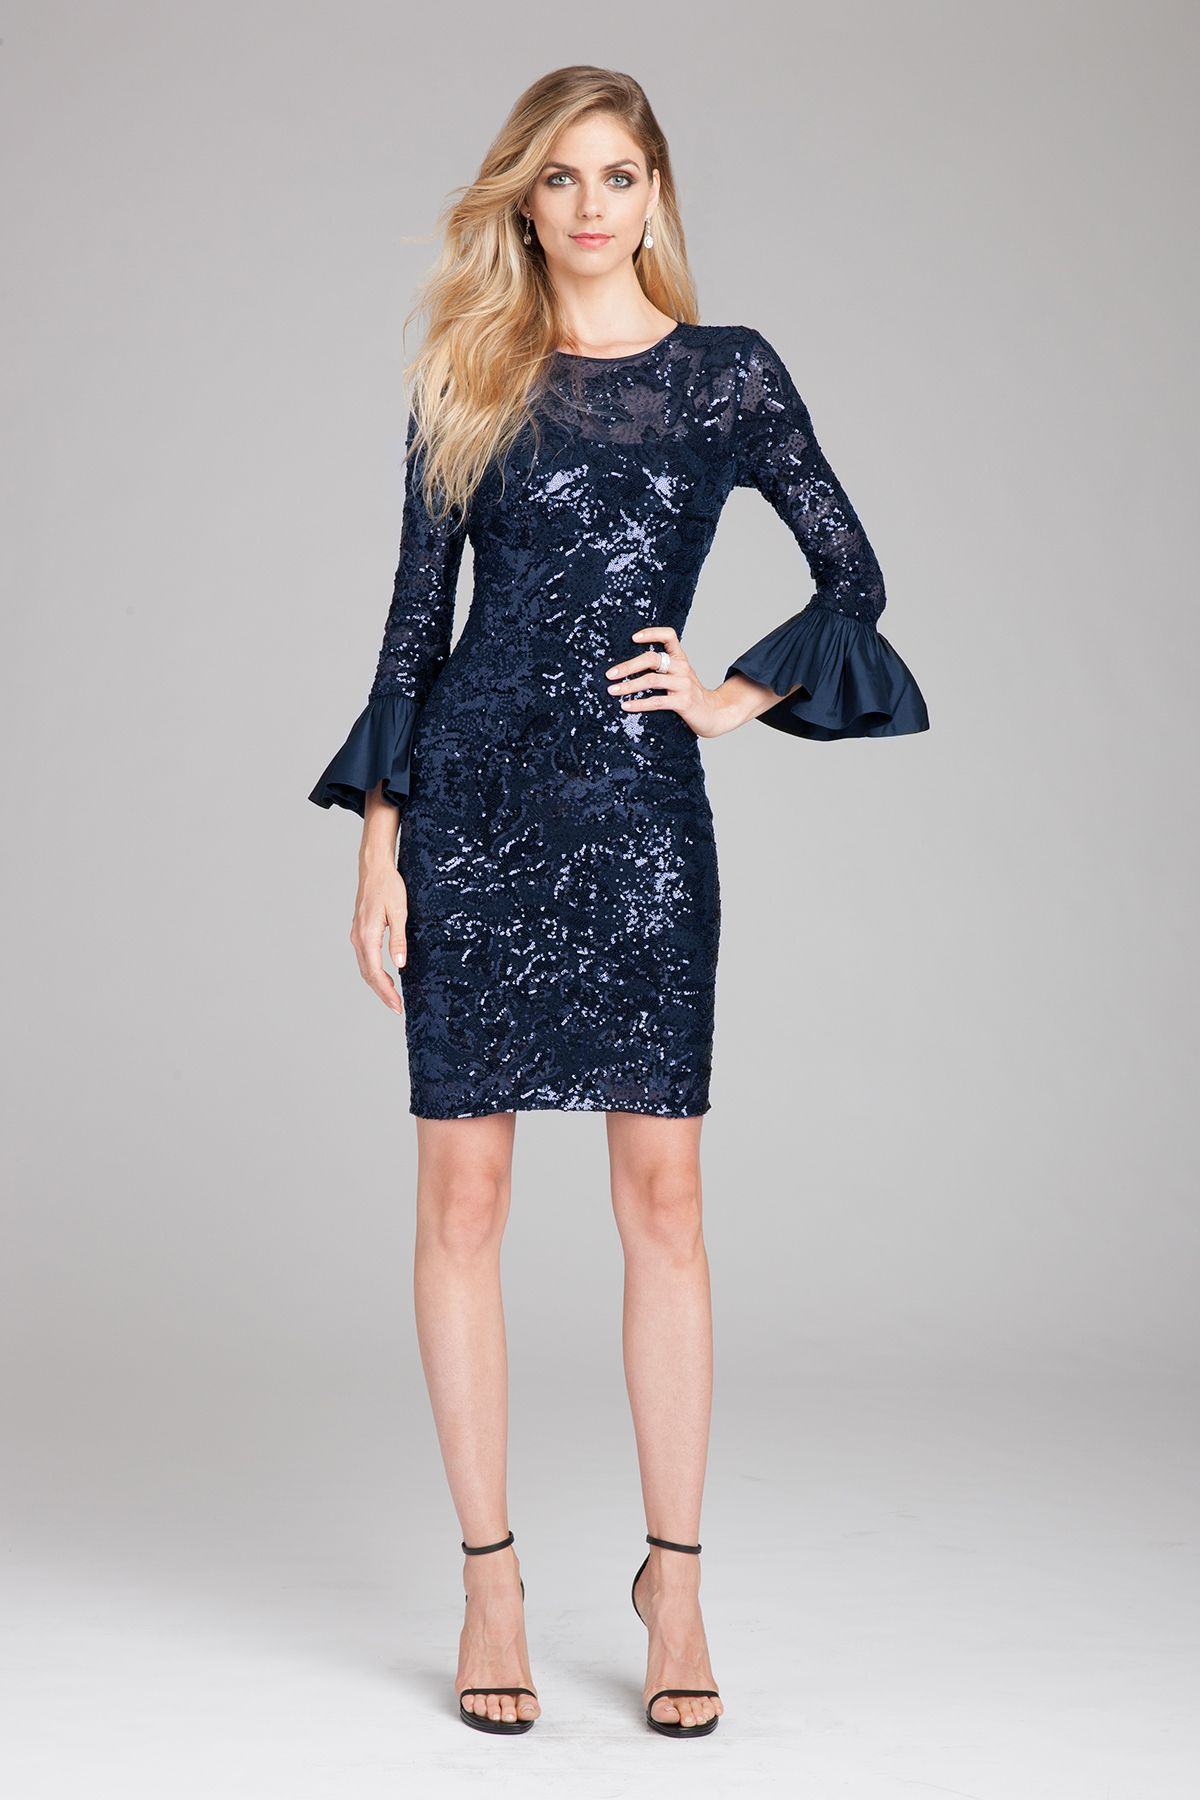 Navy Blue Wedding Guest Dress With Sleeves